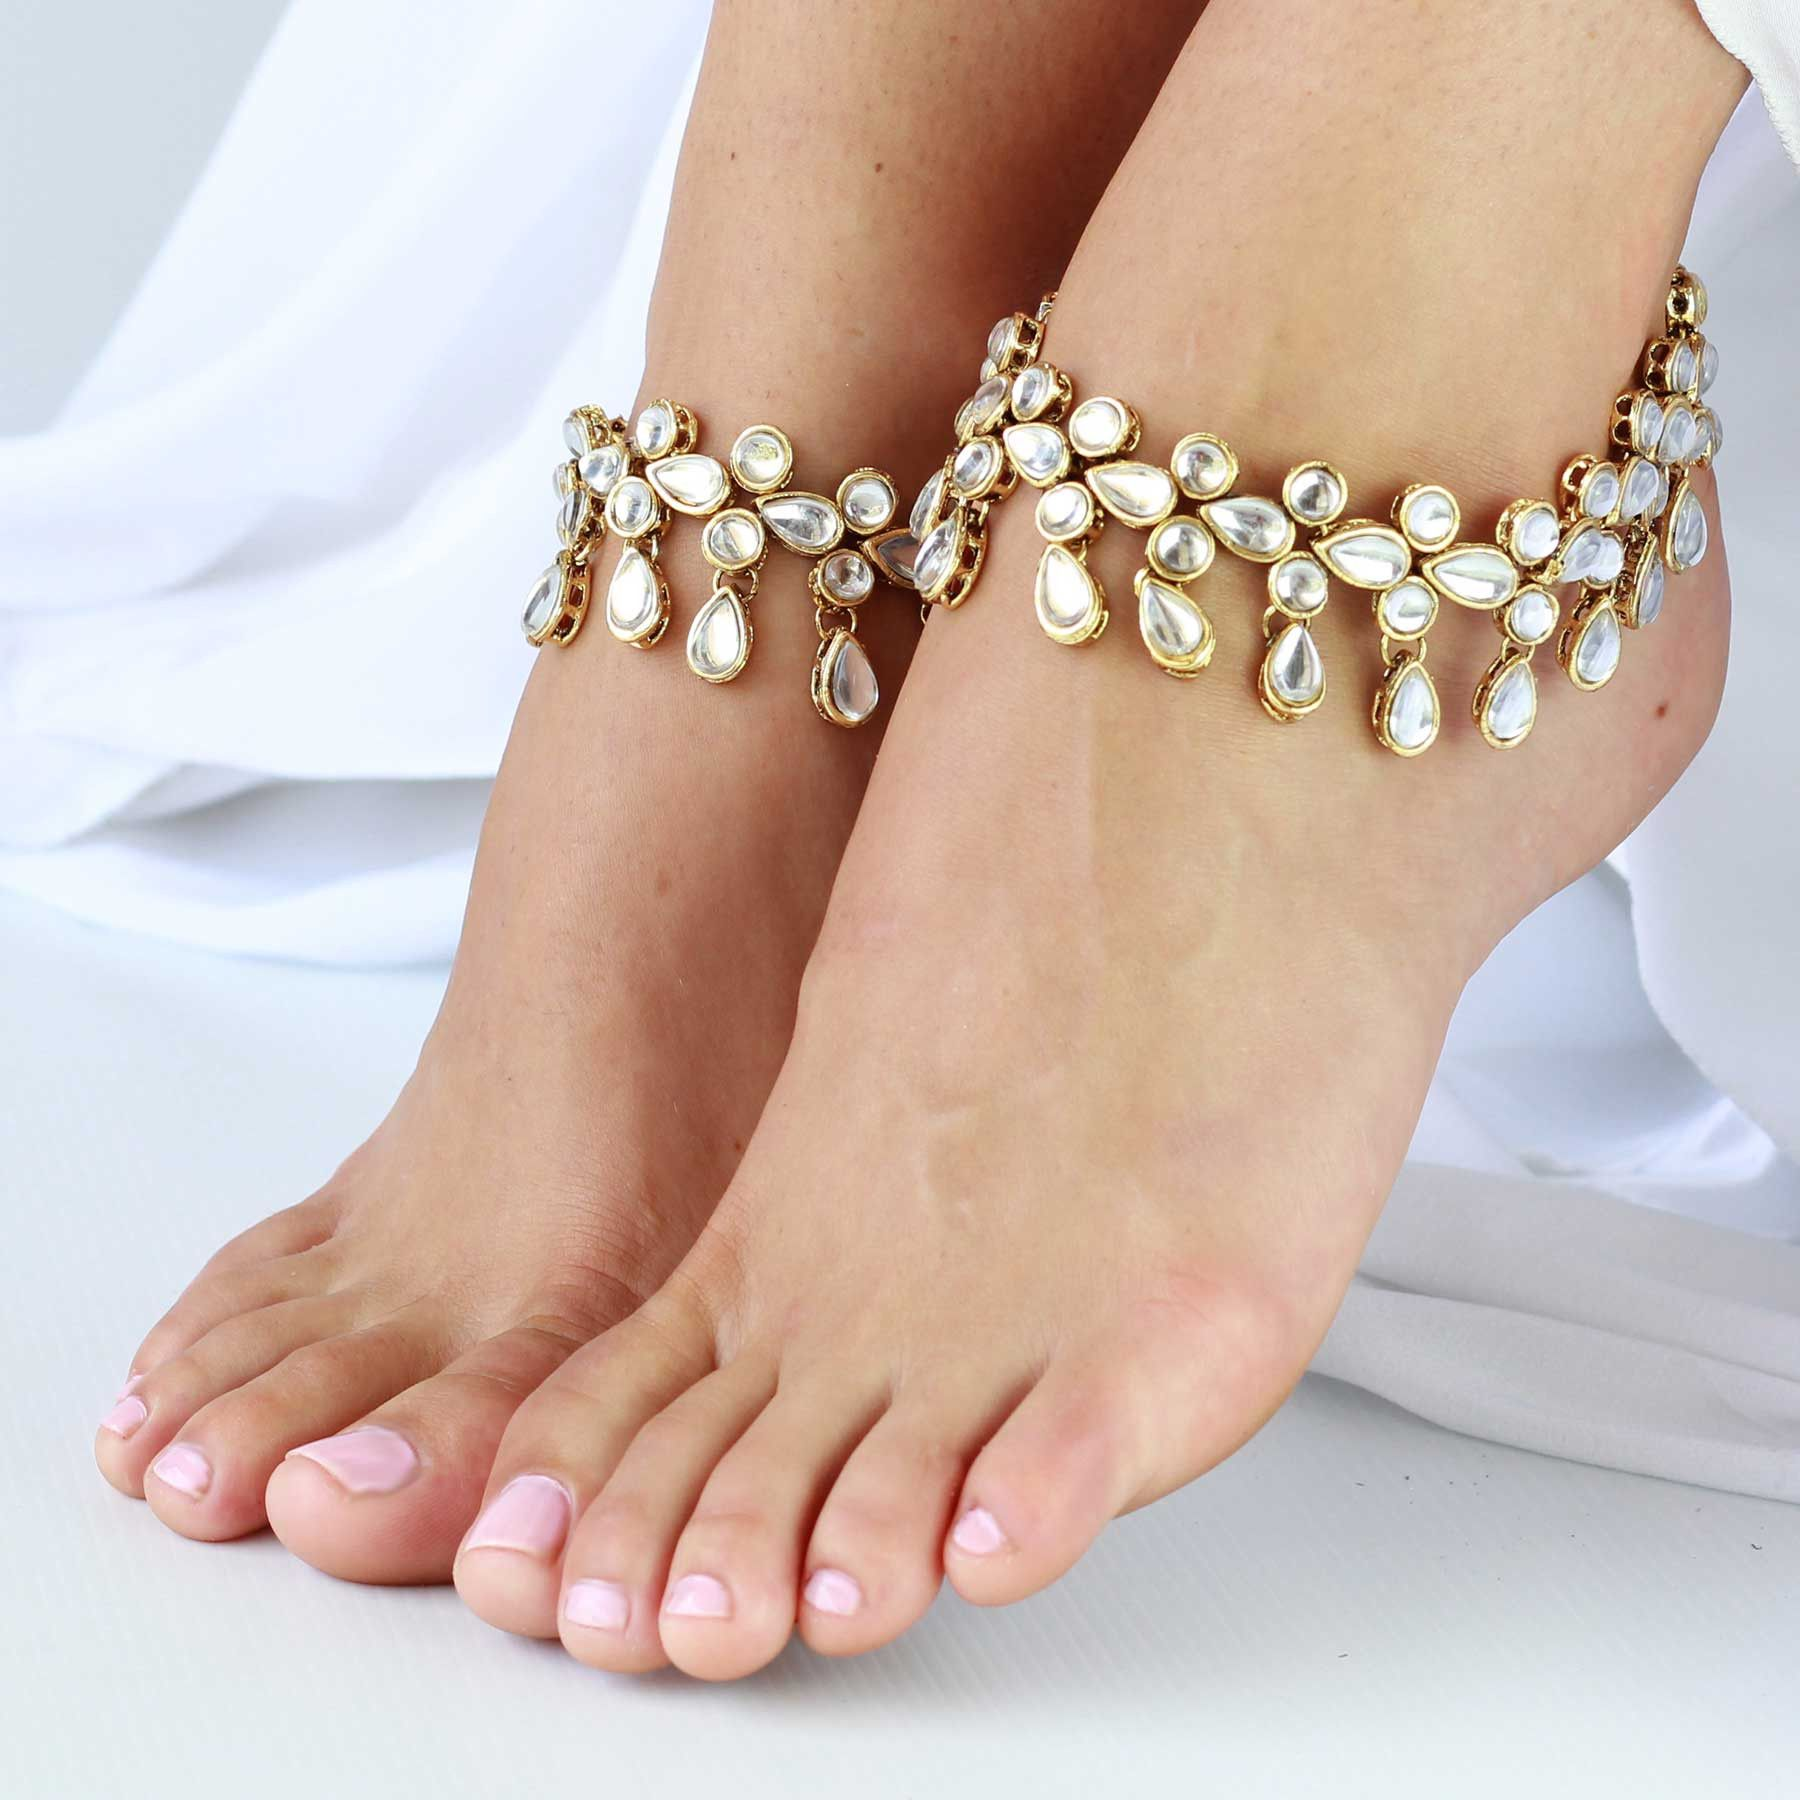 dress jewelry from indra au forever htm shoes wedding anklet hitched com soles